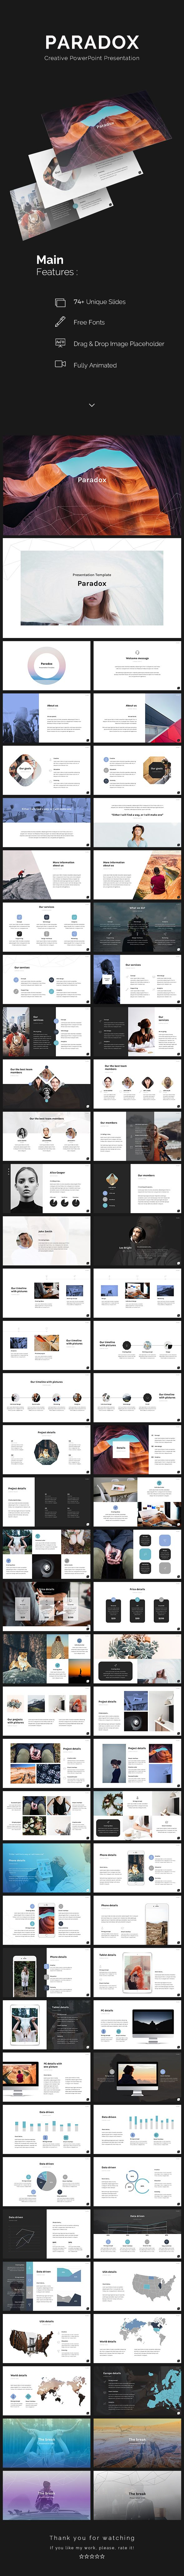 paradox powerpoint template template presentation templates and